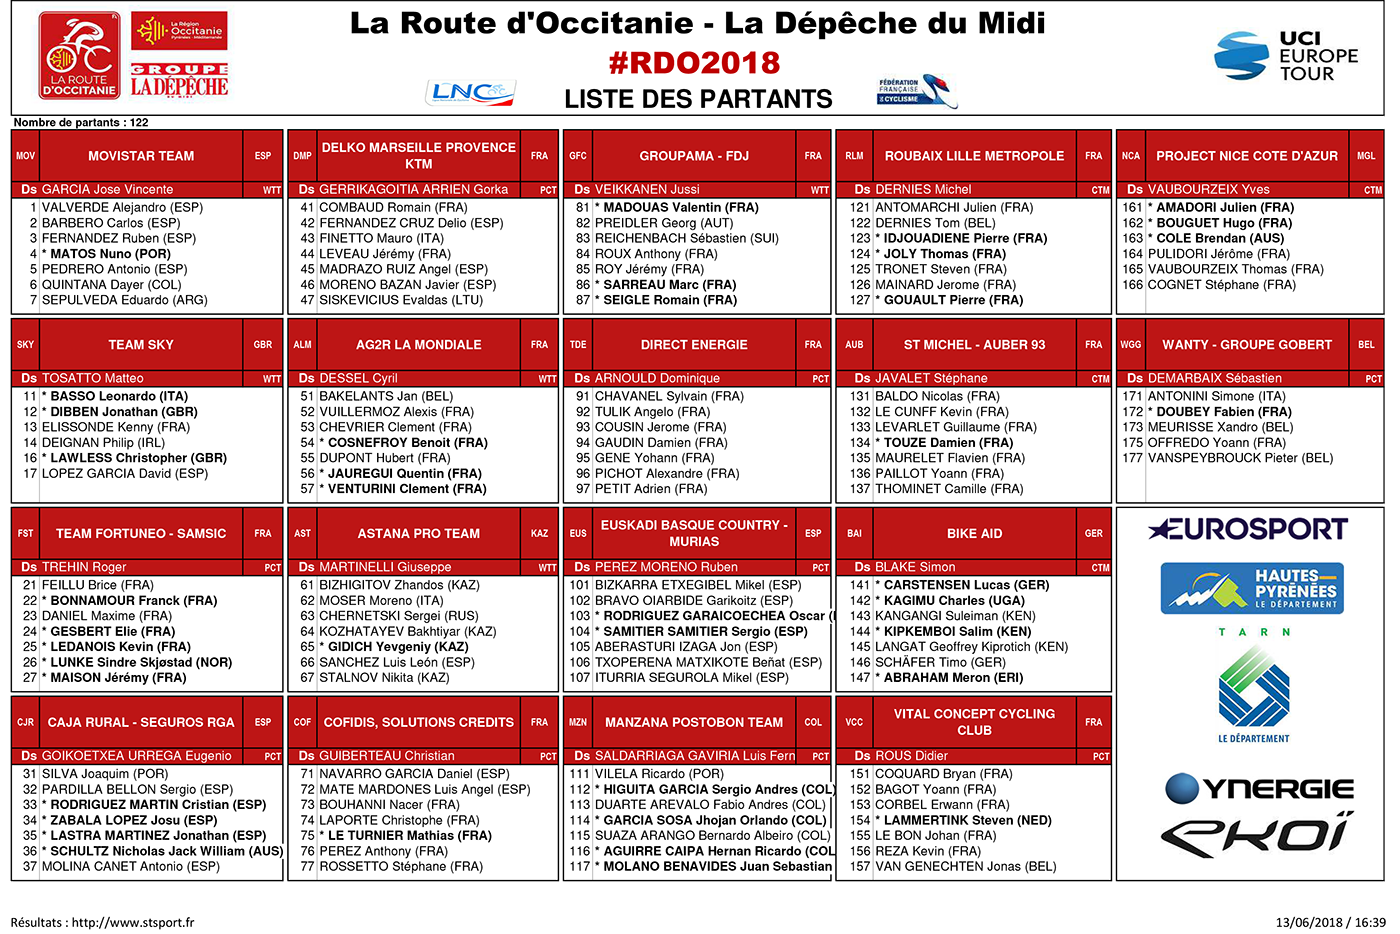 Liste officielle des partants 2018